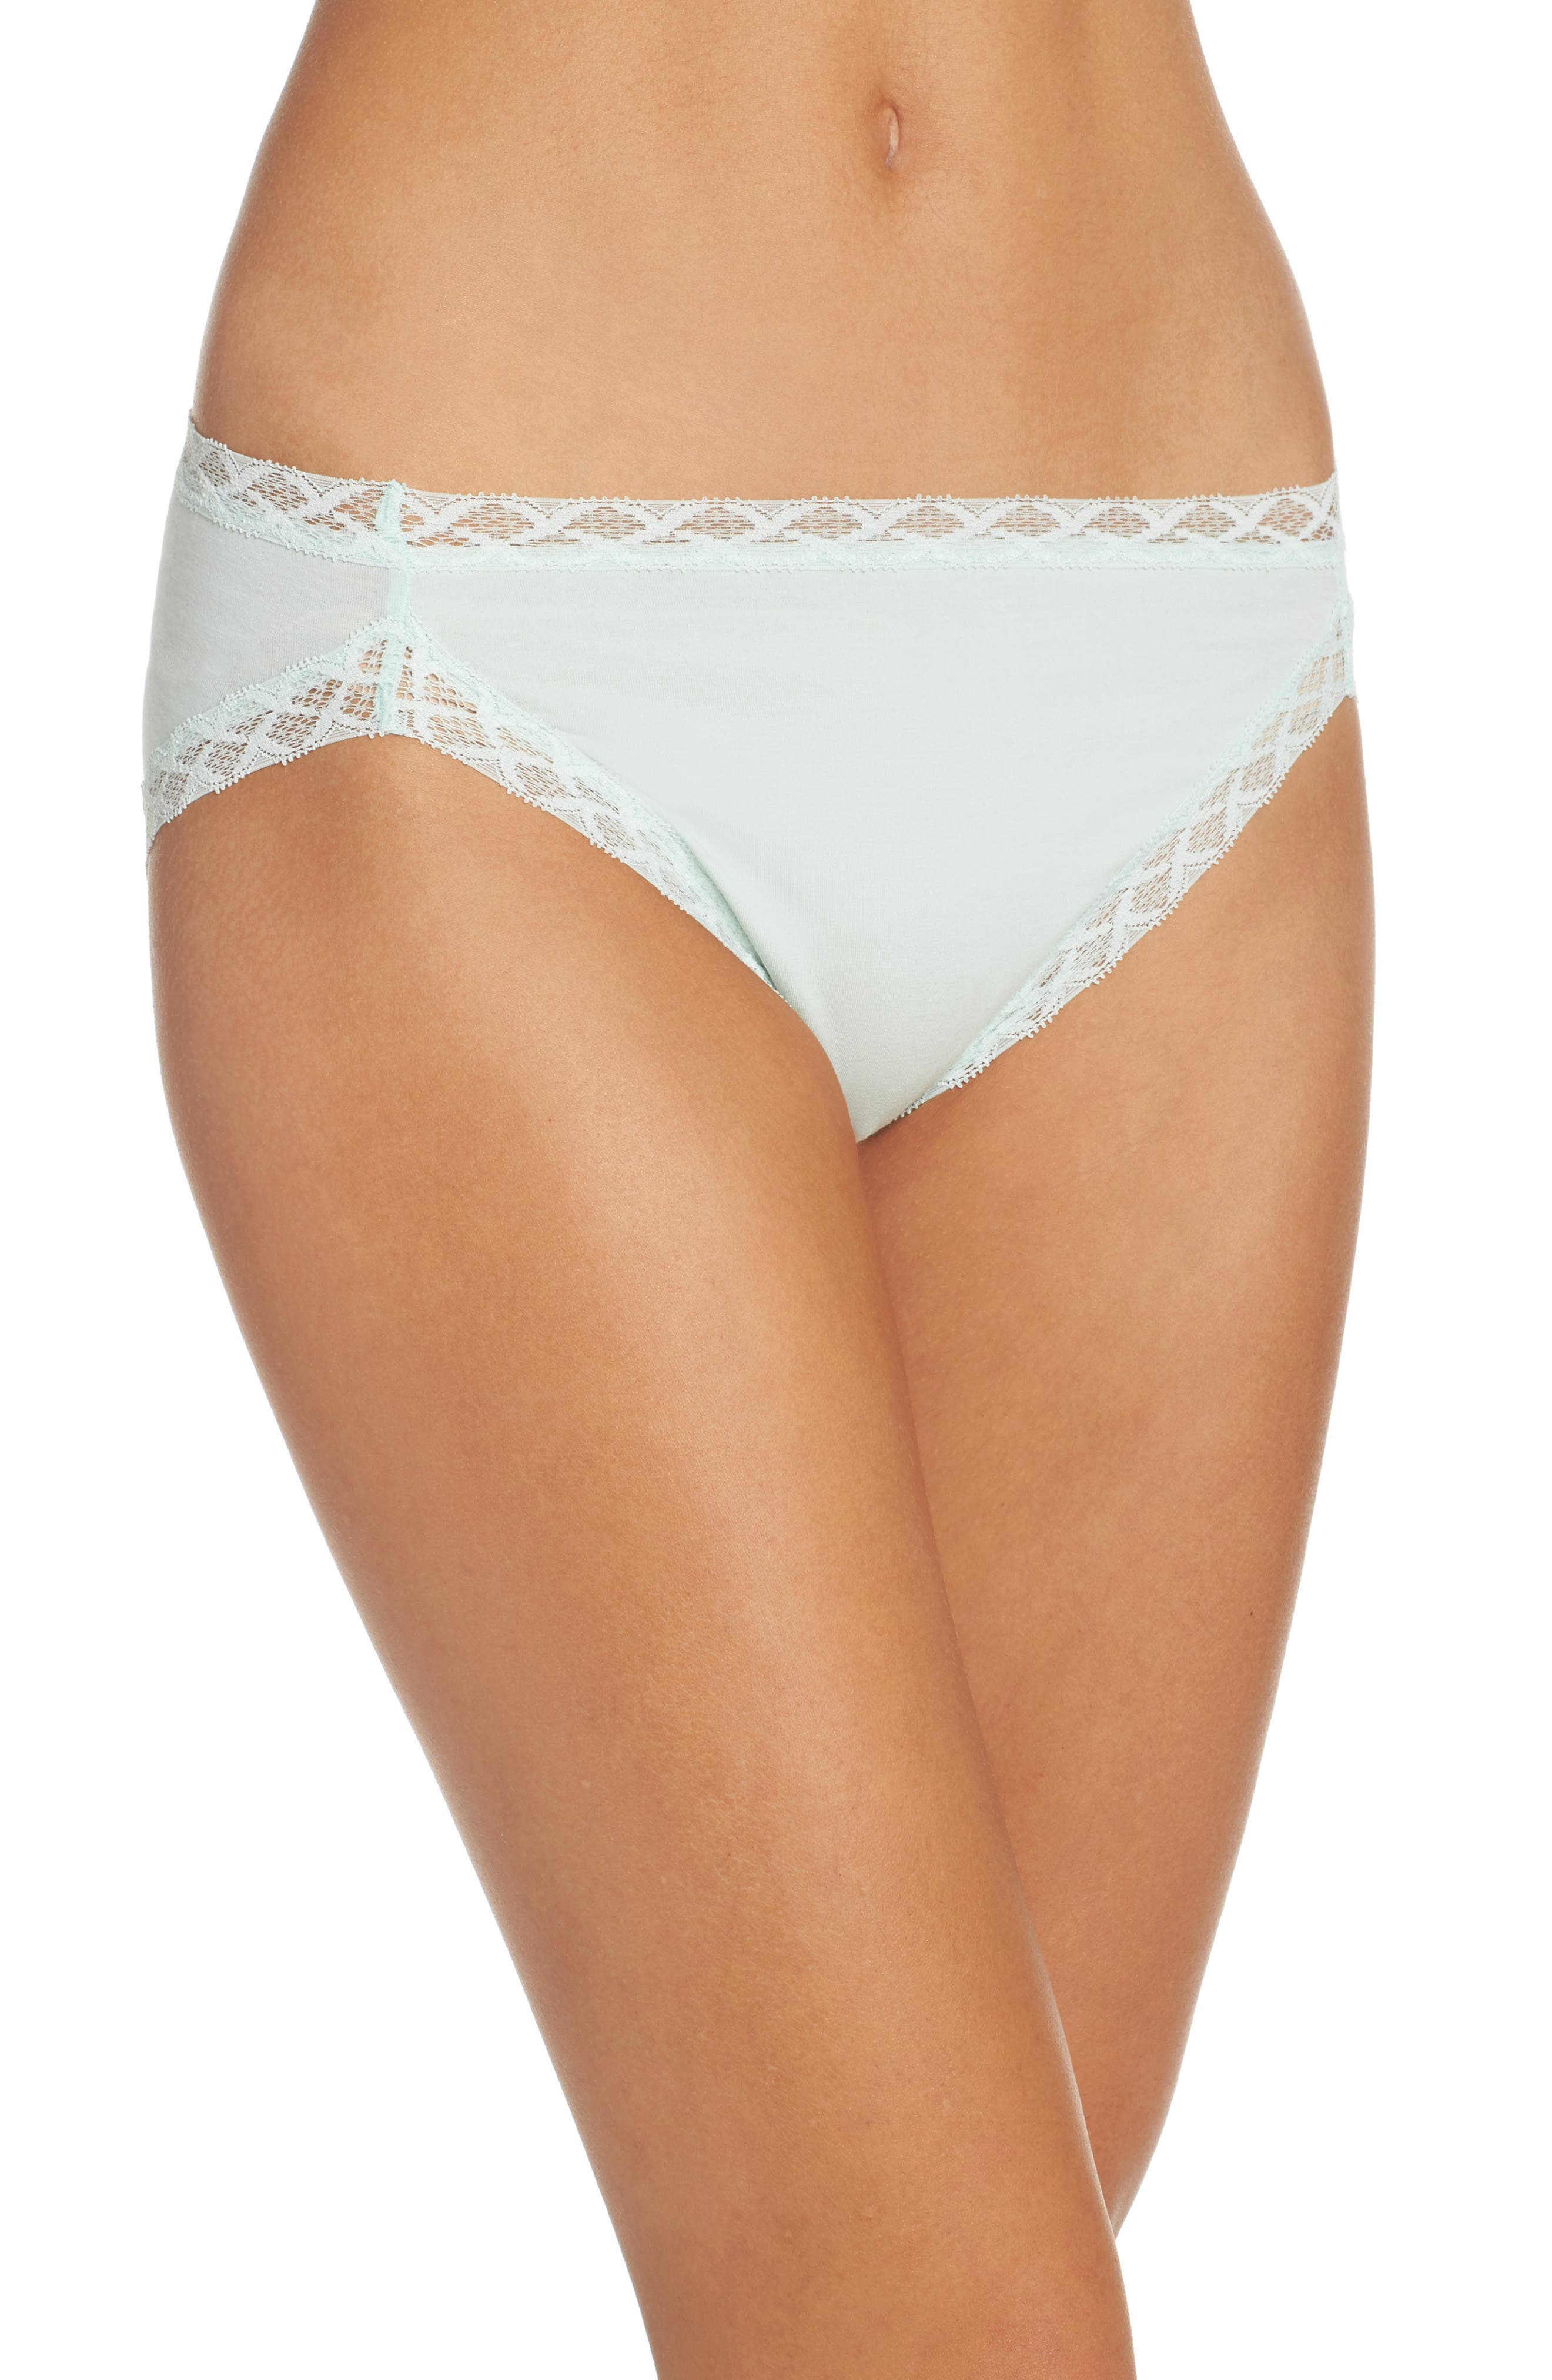 Alternate Image 1 Selected - Natori Bliss French Cut Briefs (3 for $36)